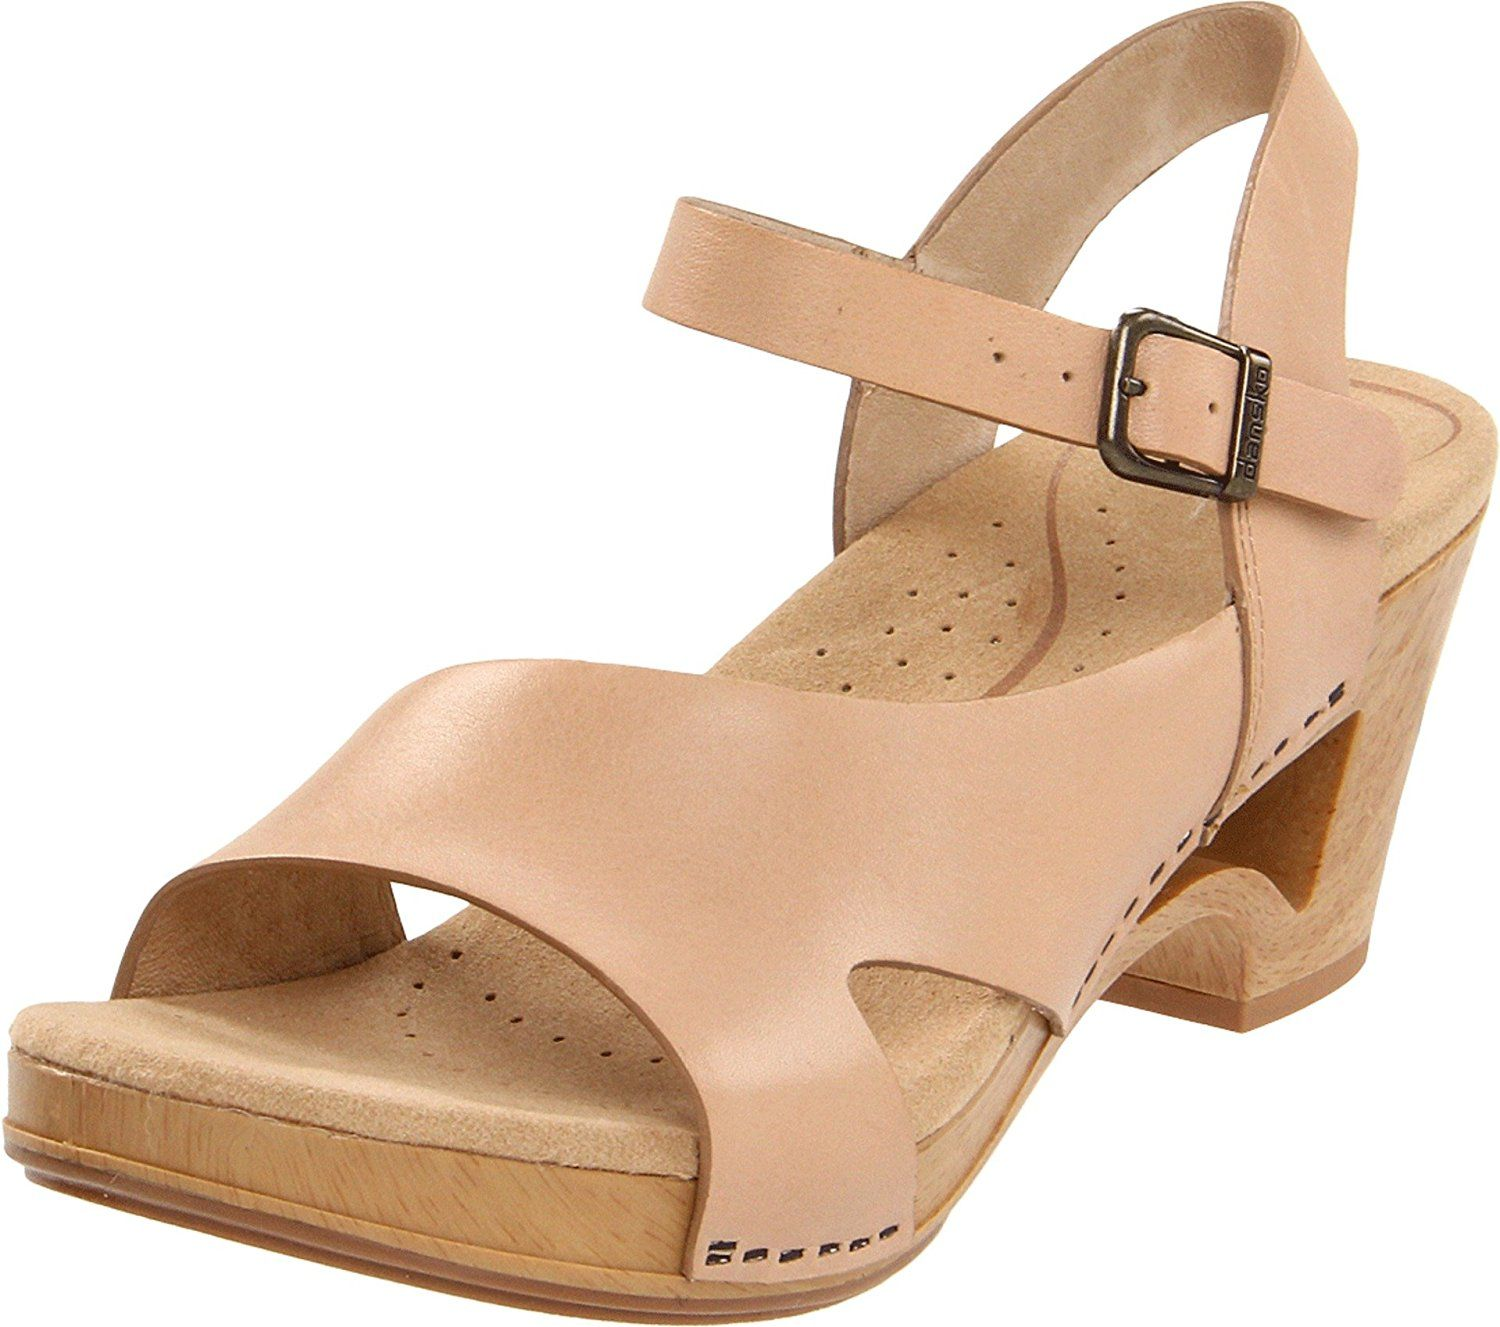 Dansko Women's Tasha Sandal > Insider's special review you can't miss. Read more  : Dansko sandals